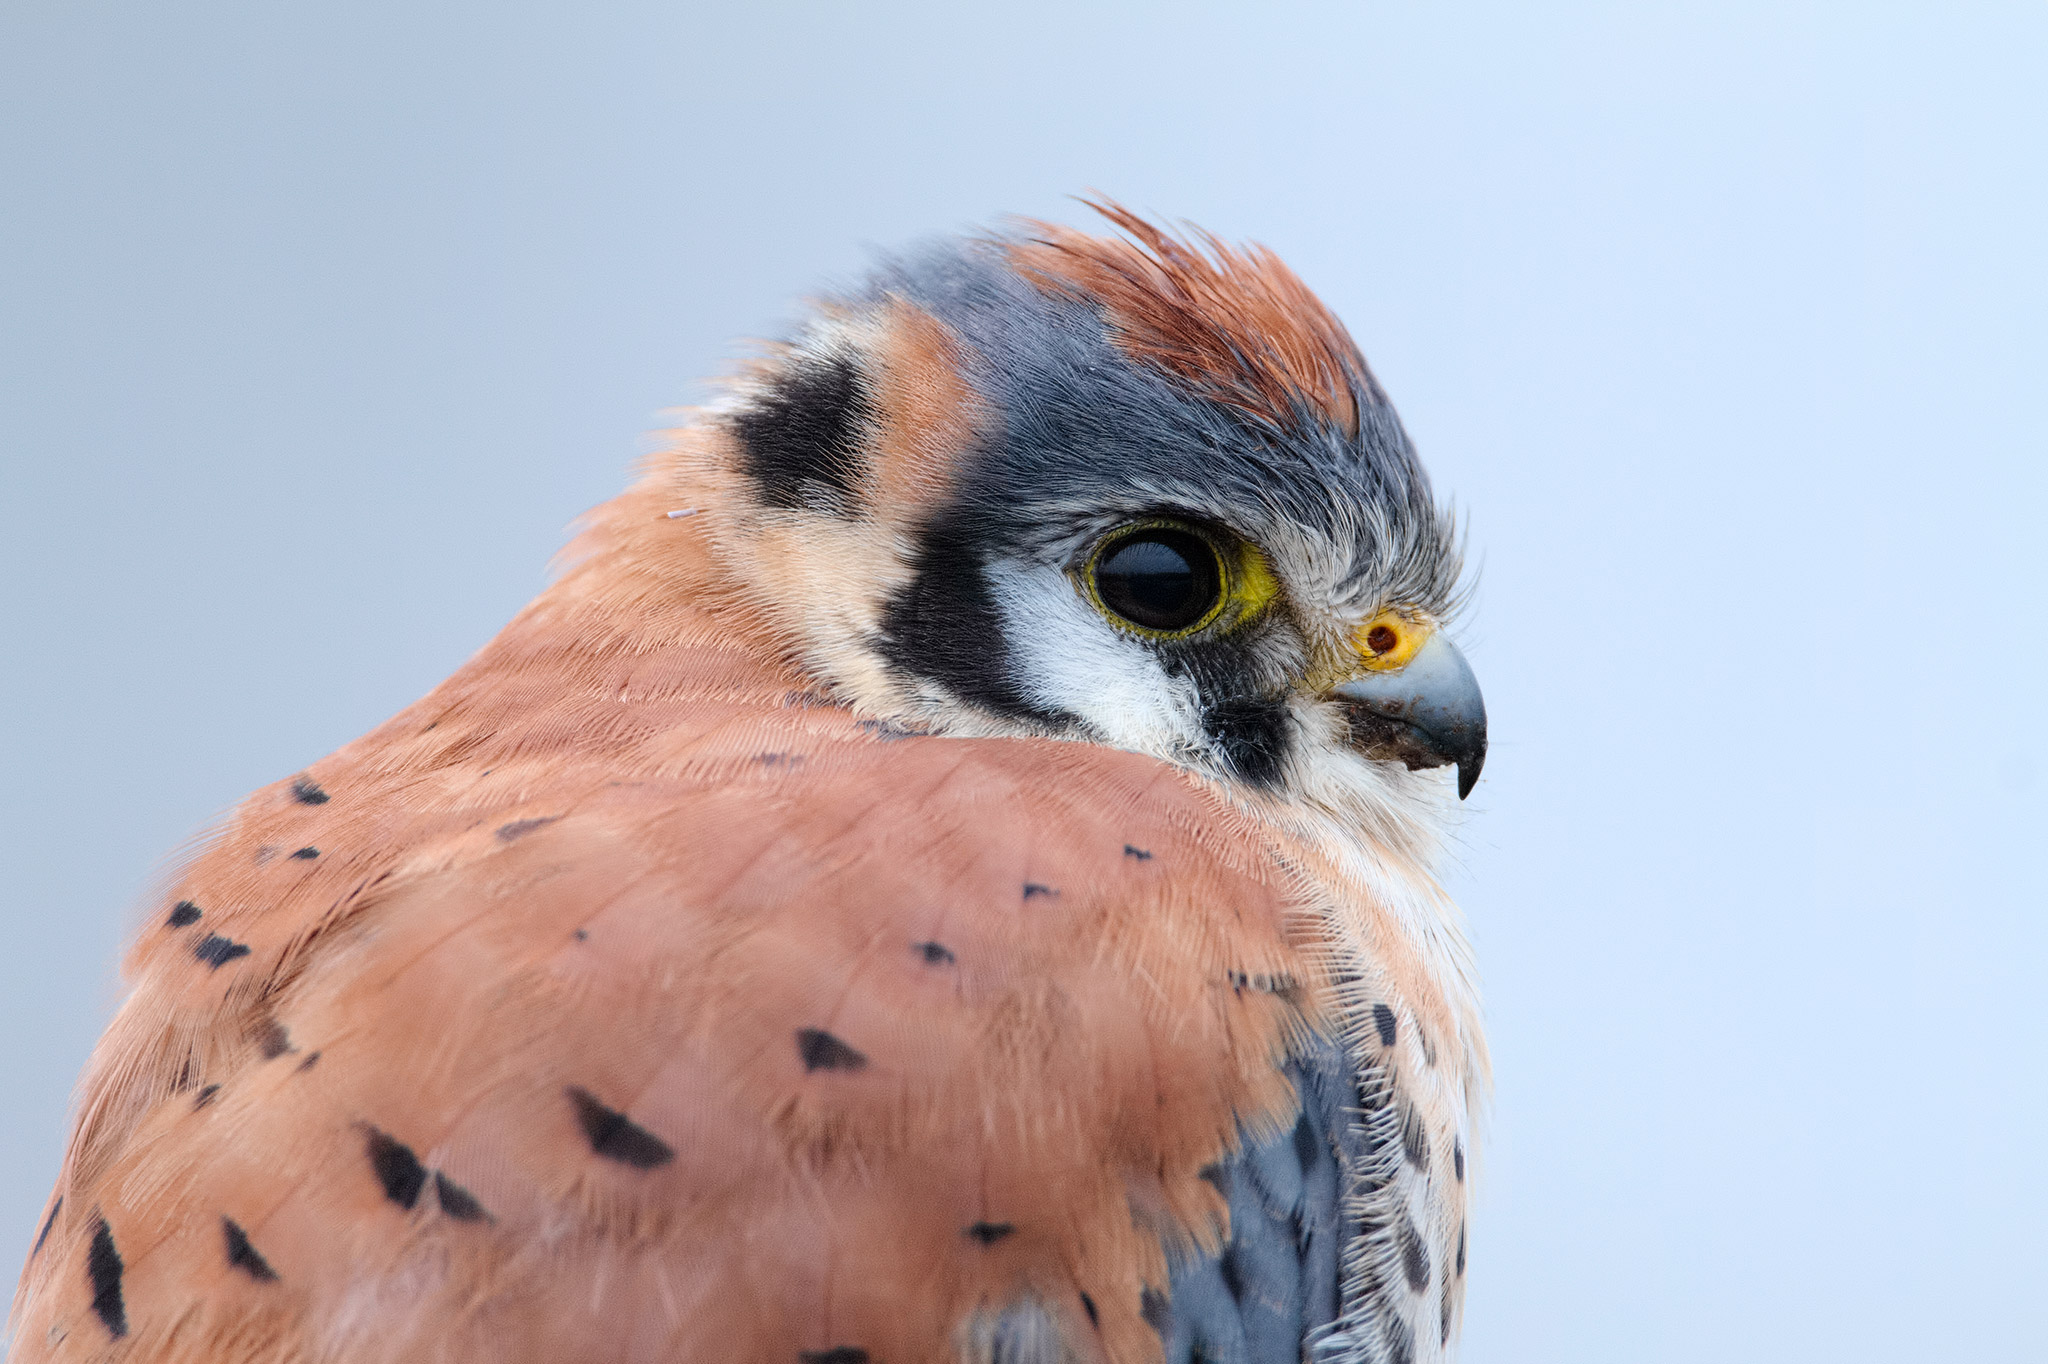 Kestrel_Attribution-NonCommercial-NoDerivs 2.0 Generic (CC BY-NC-ND 2.0)_Rick Cameron